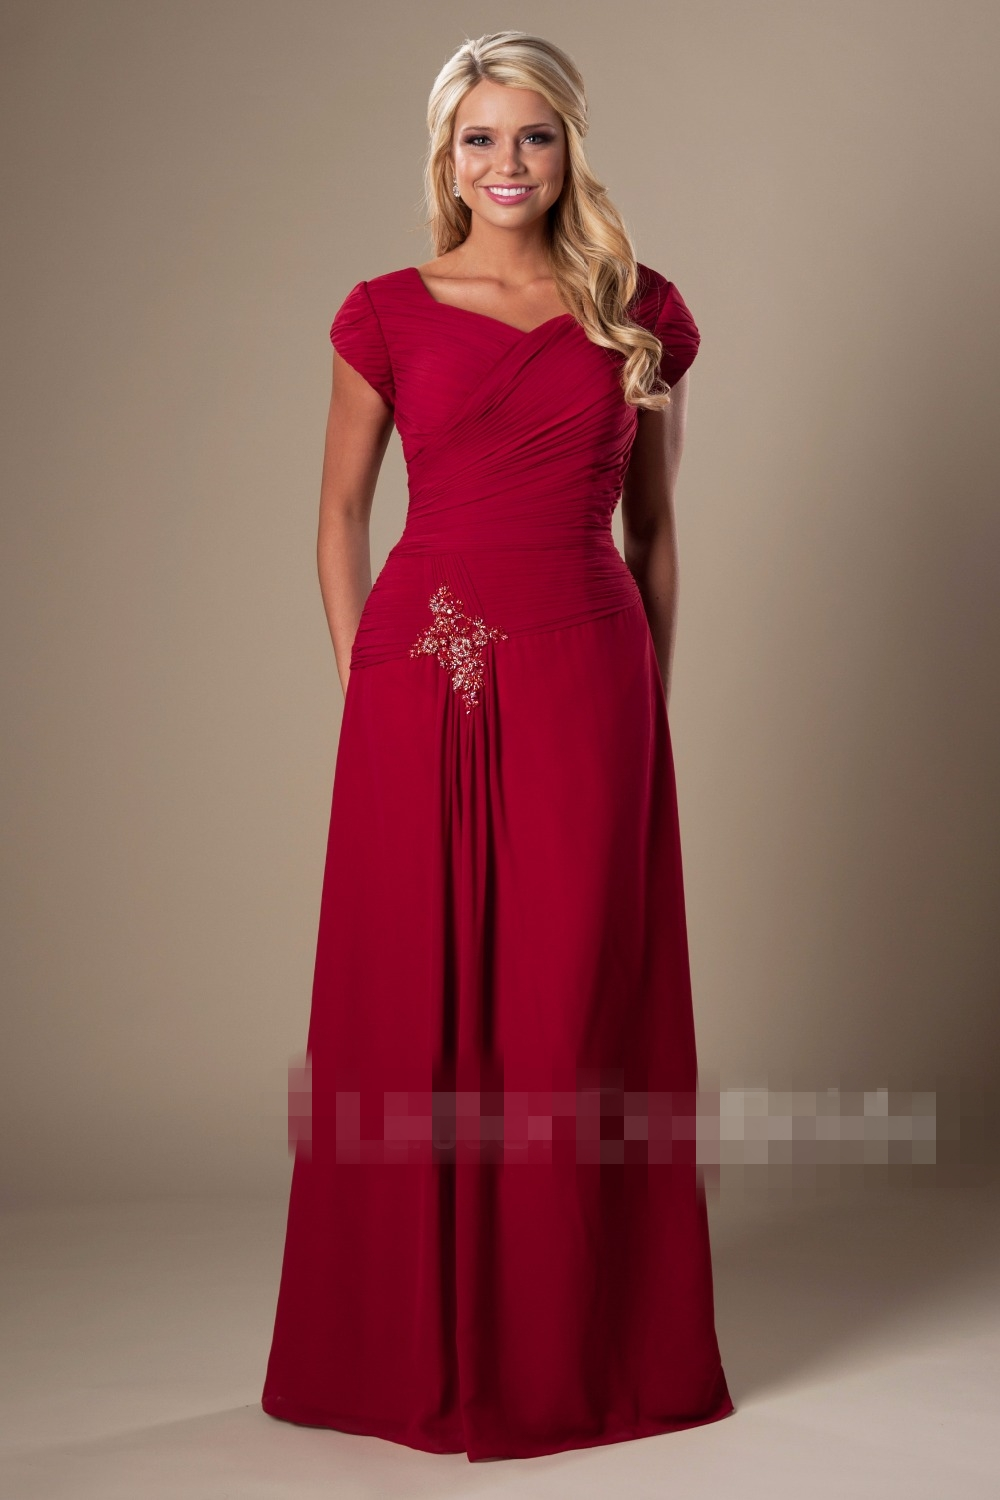 Dark Red Chiffon Modest   Bridesmaid     Dresses   2019 With Cap Sleeves Summer Temple Pleats Women Formal Wedding Party   Dresses   New